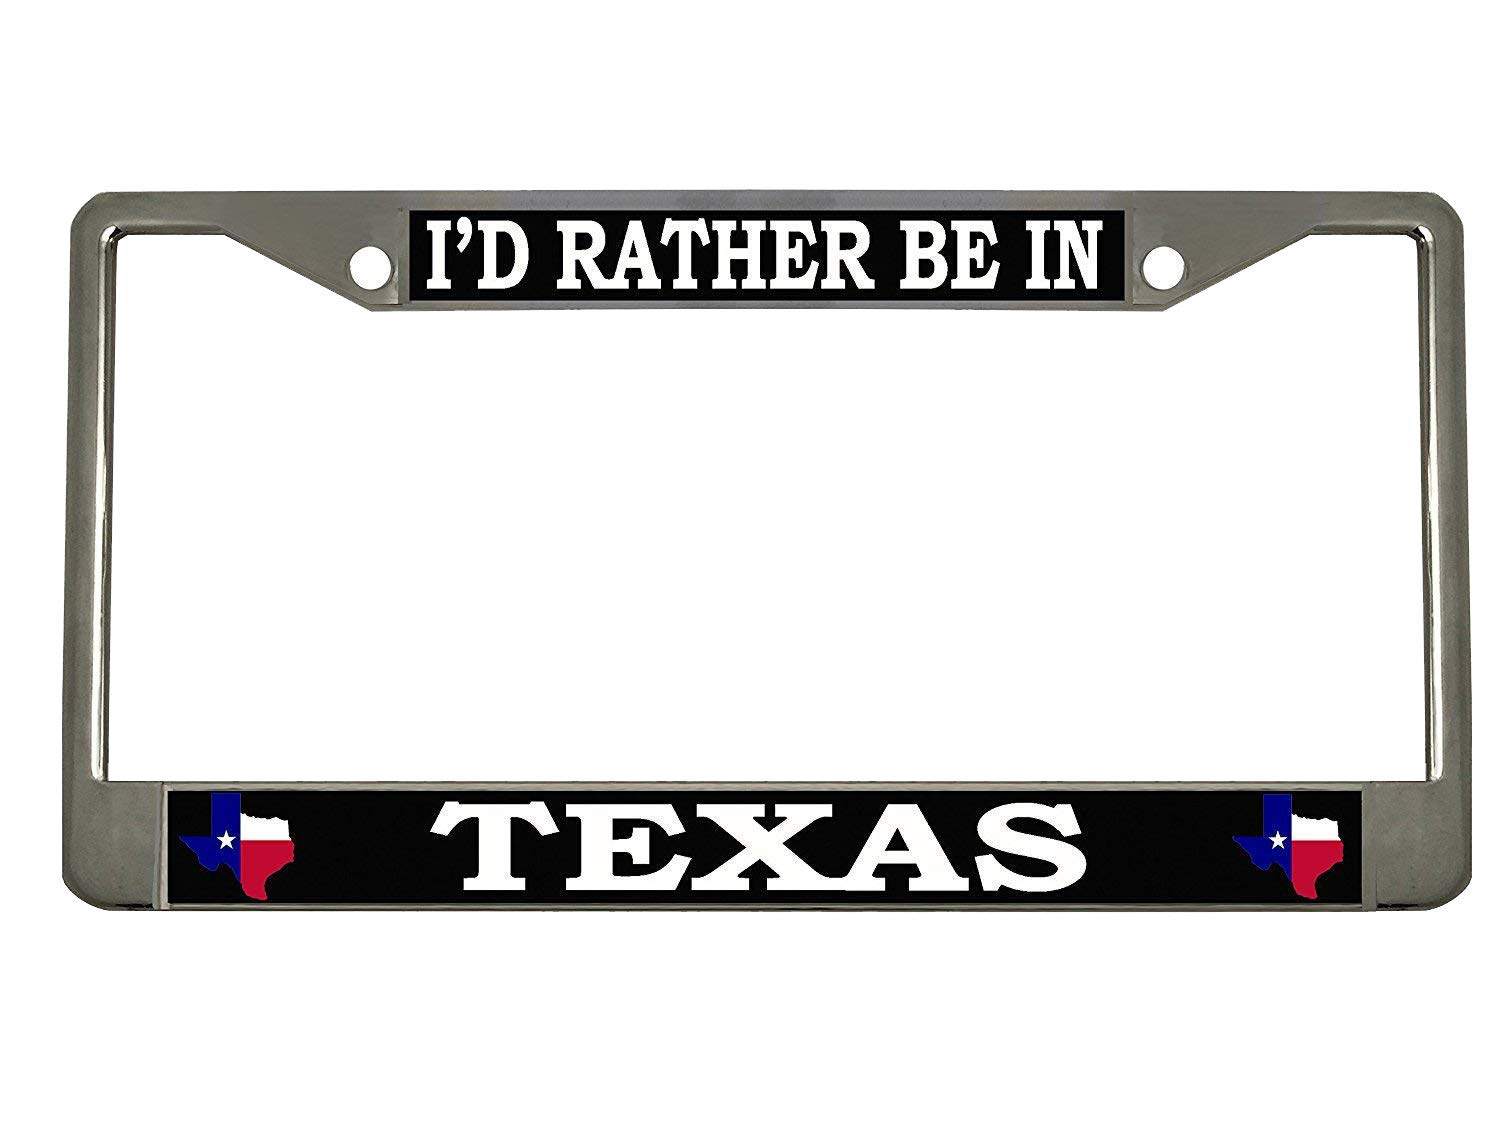 Id Rather be in Texas Heavy Duty Stainless Steel Chrome License Plate Frame Car Tag Holder /… STHANCAT OF TAMPA